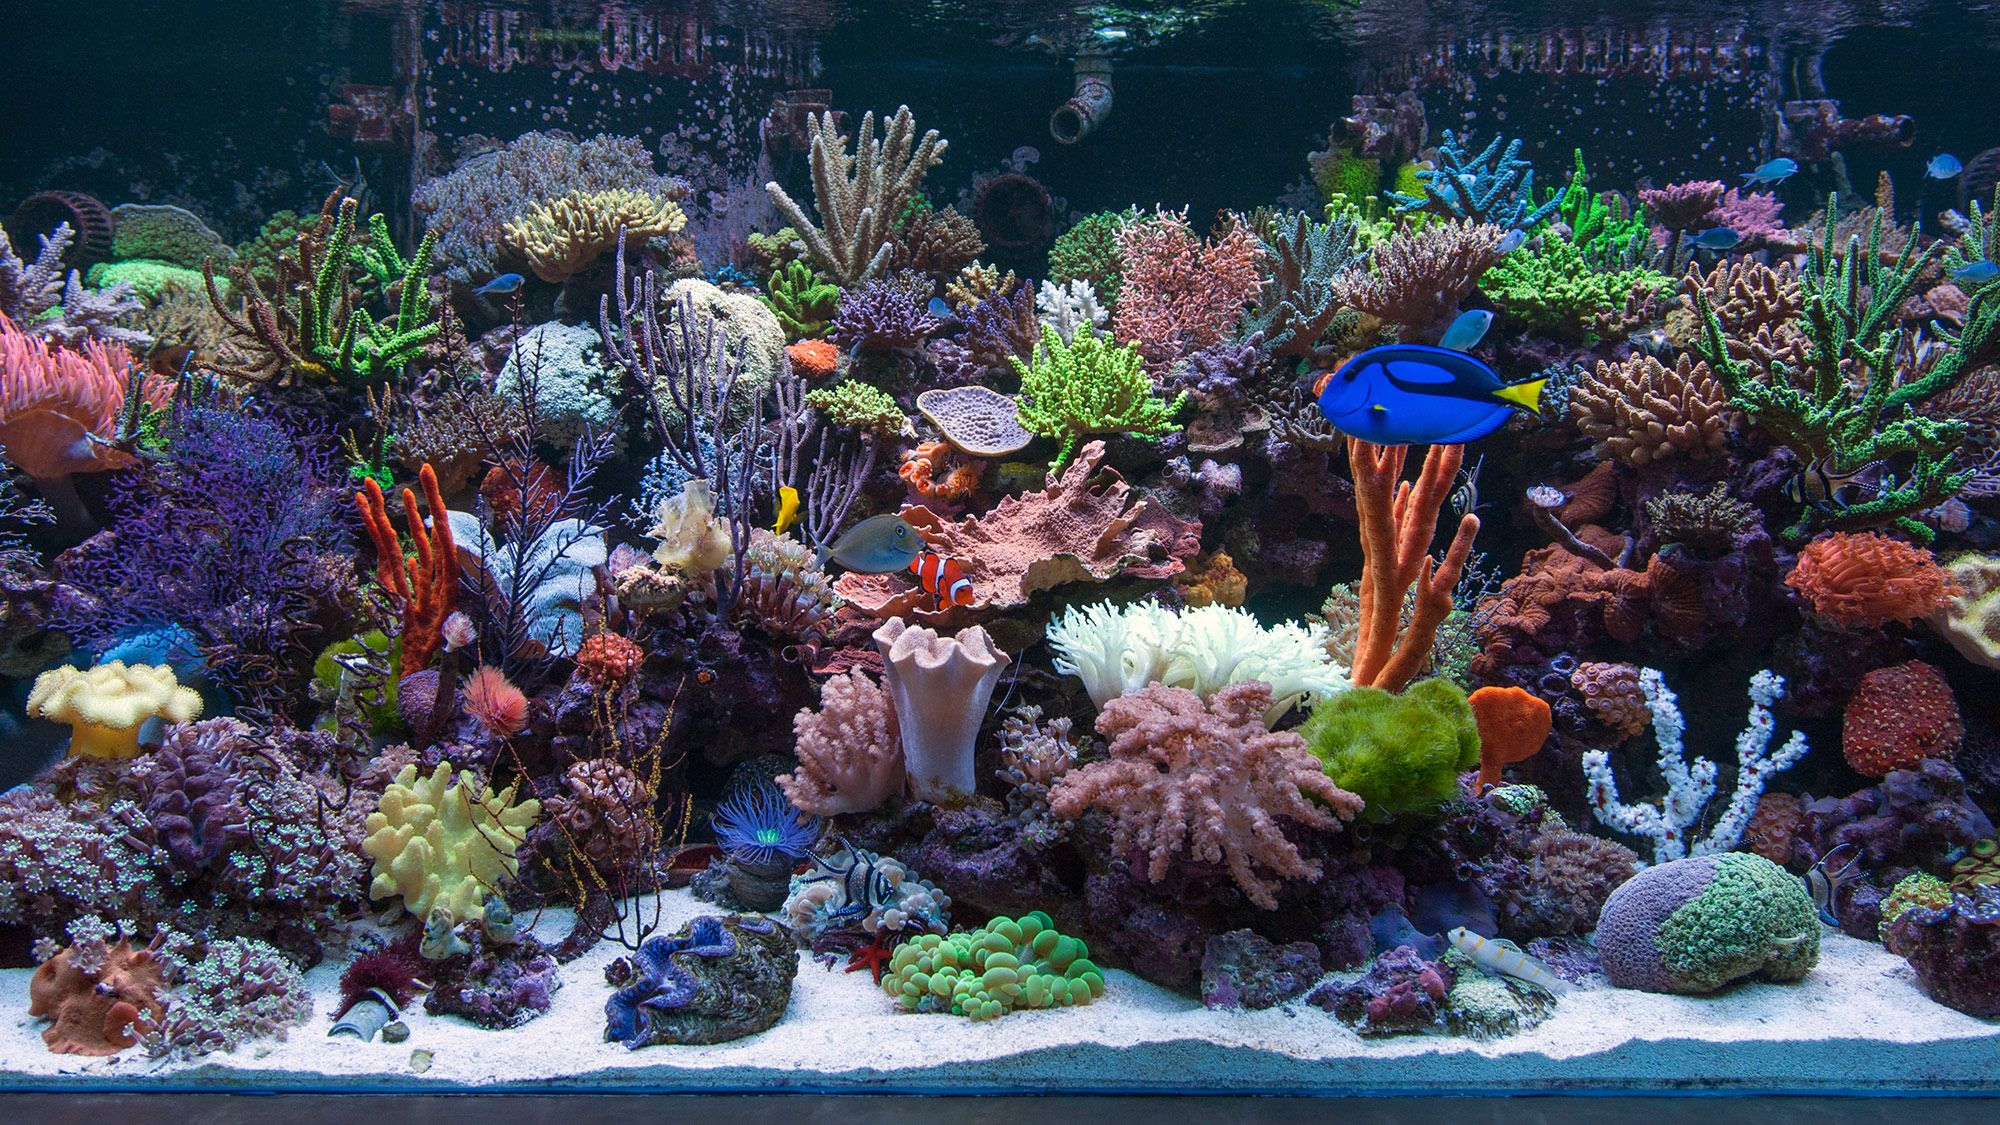 Marine aquarium google search artistic aquarium for Marine fish tanks